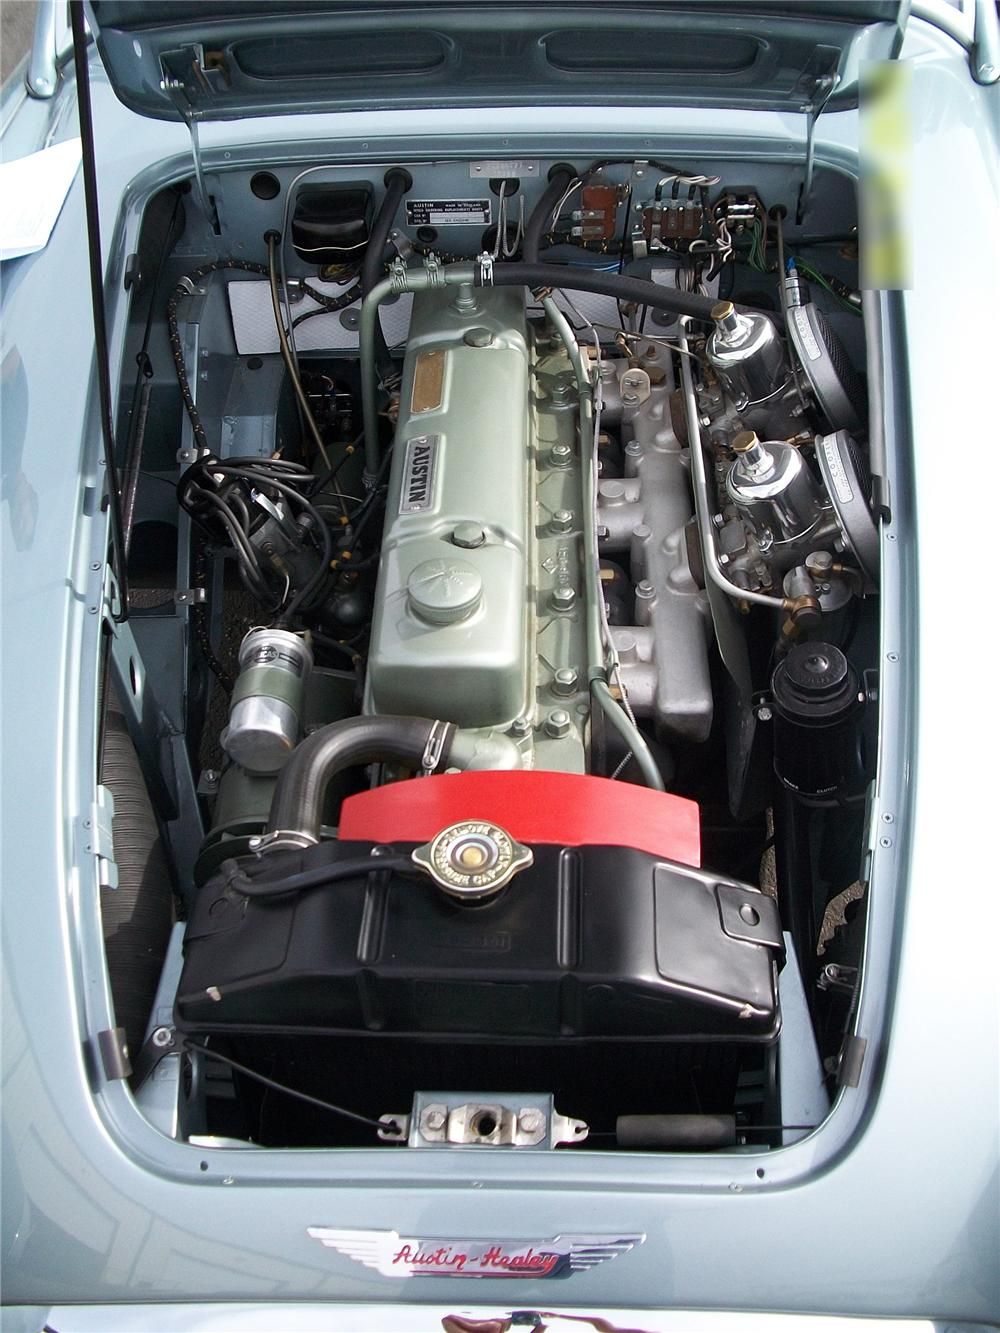 1961 AUSTIN-HEALEY 3000 BT7 ROADSTER - Engine - 93255